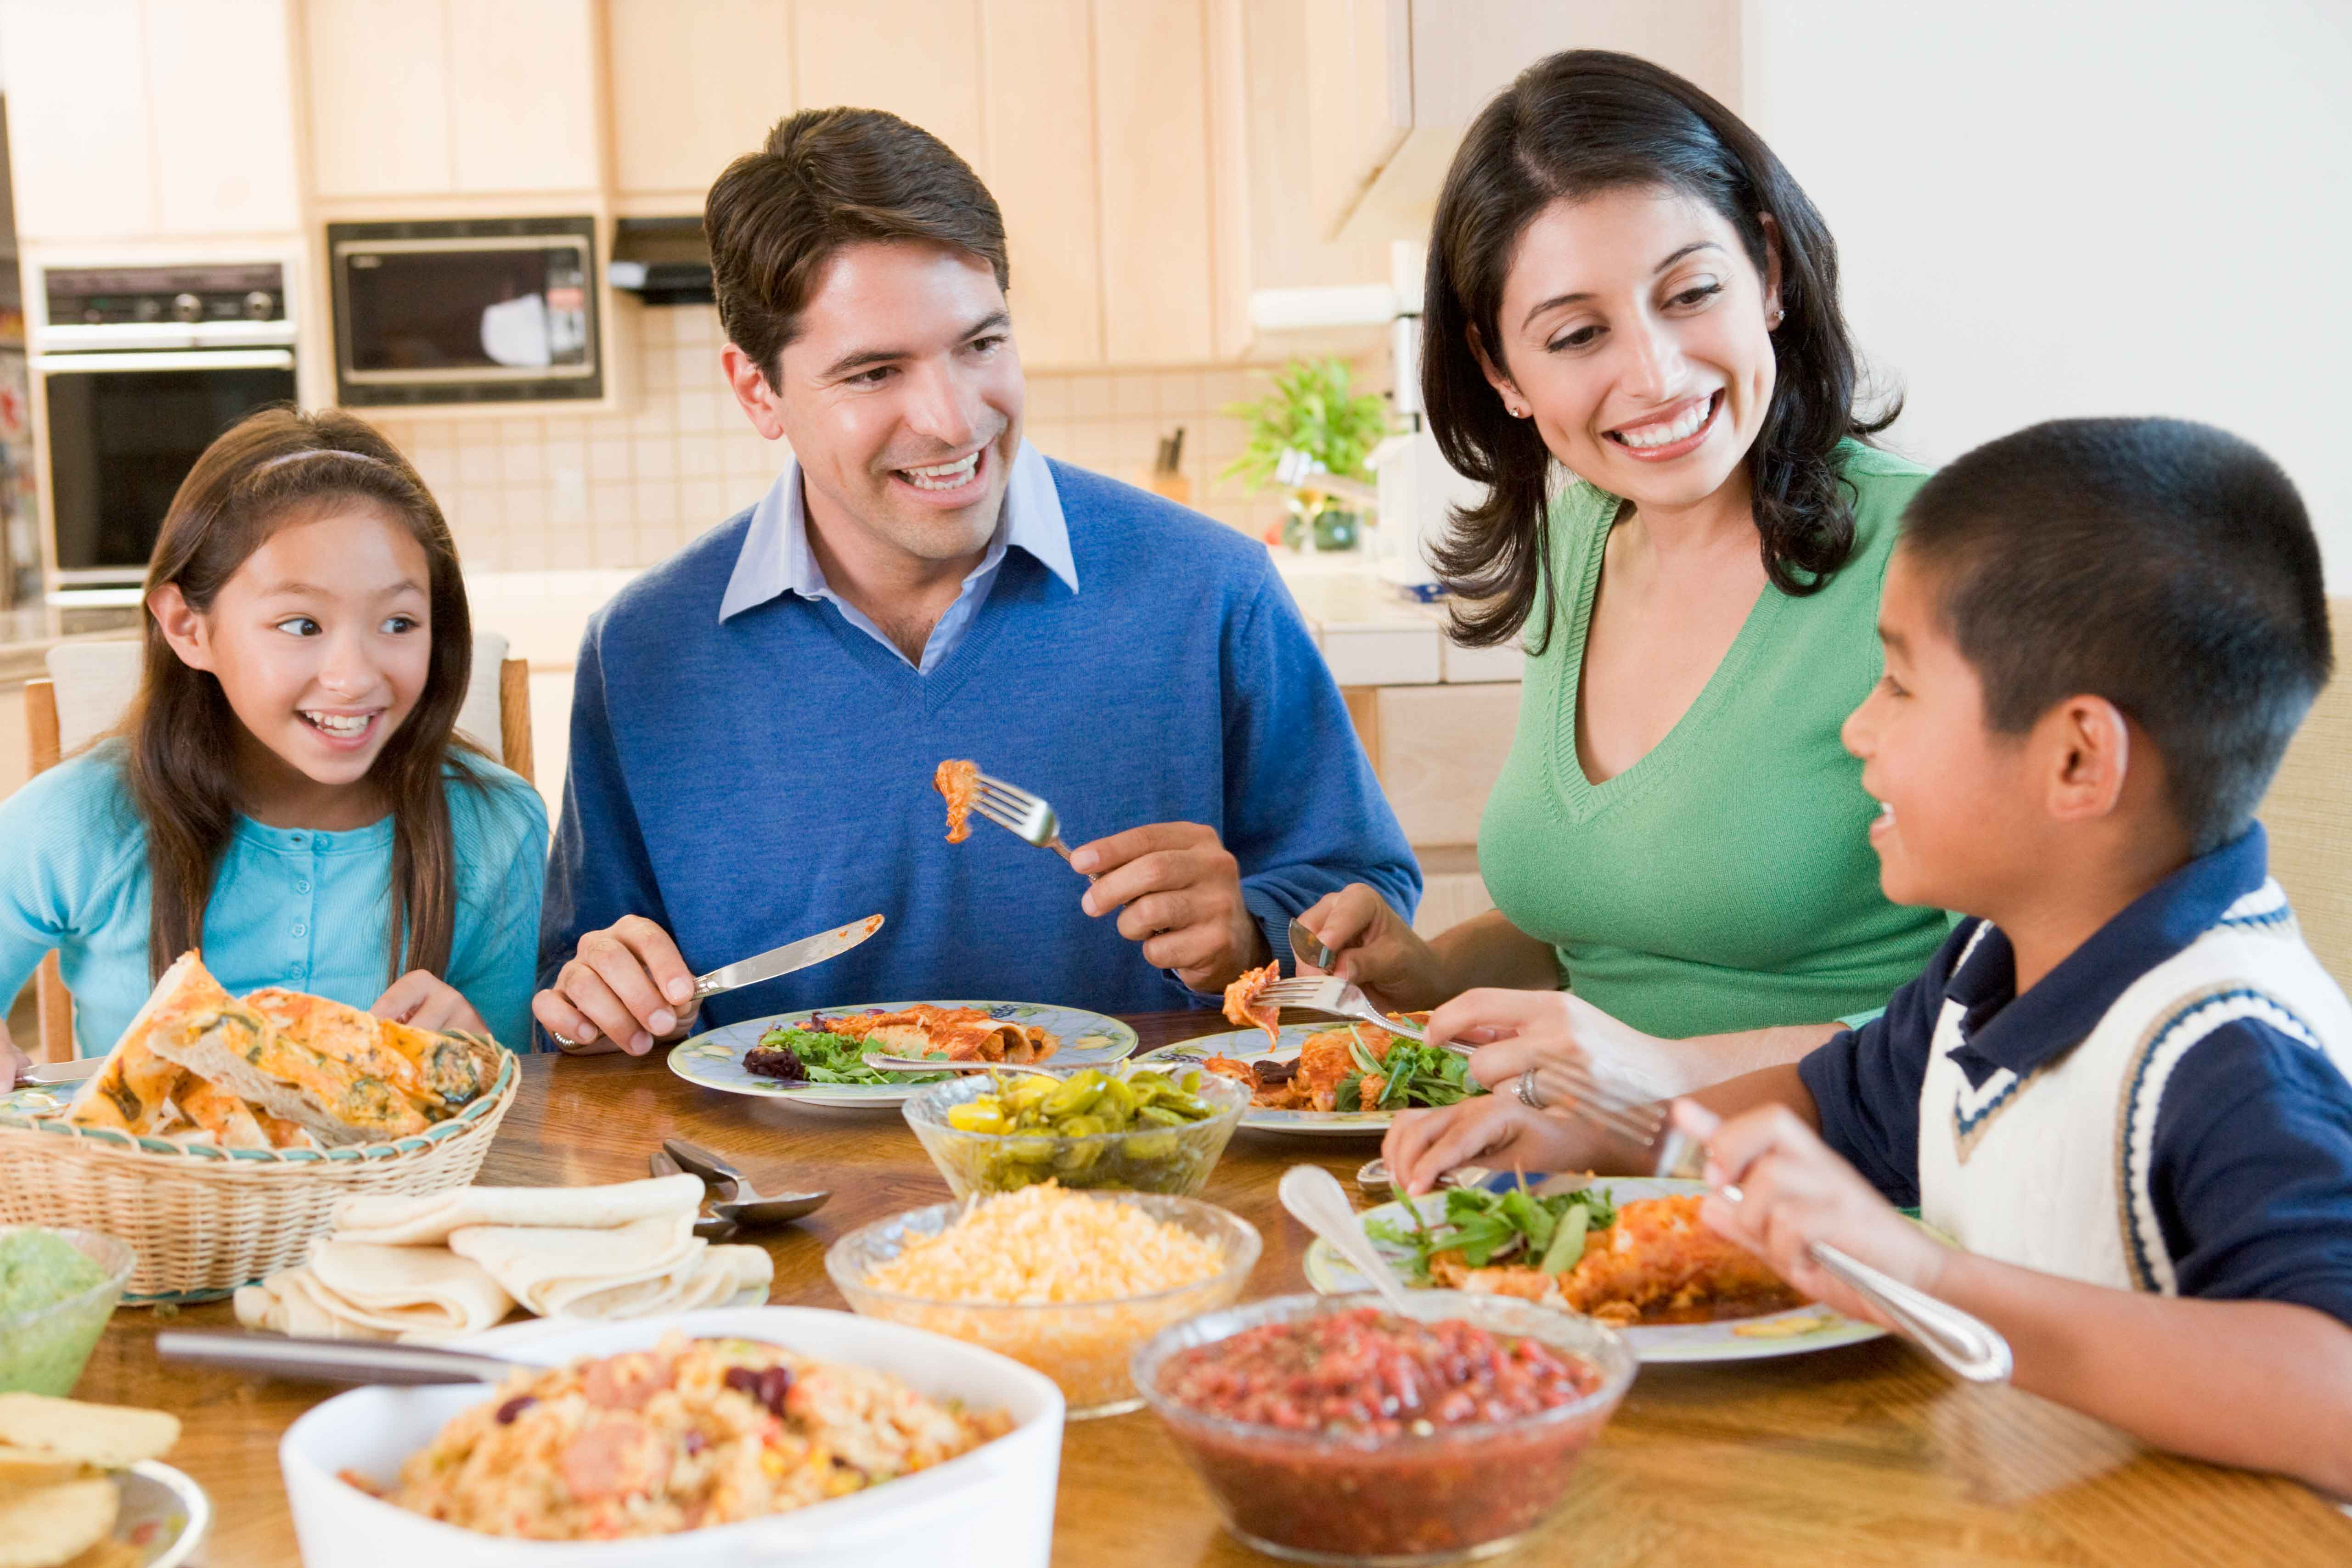 7 Things to Ask Your Kids at Dinner Beyond